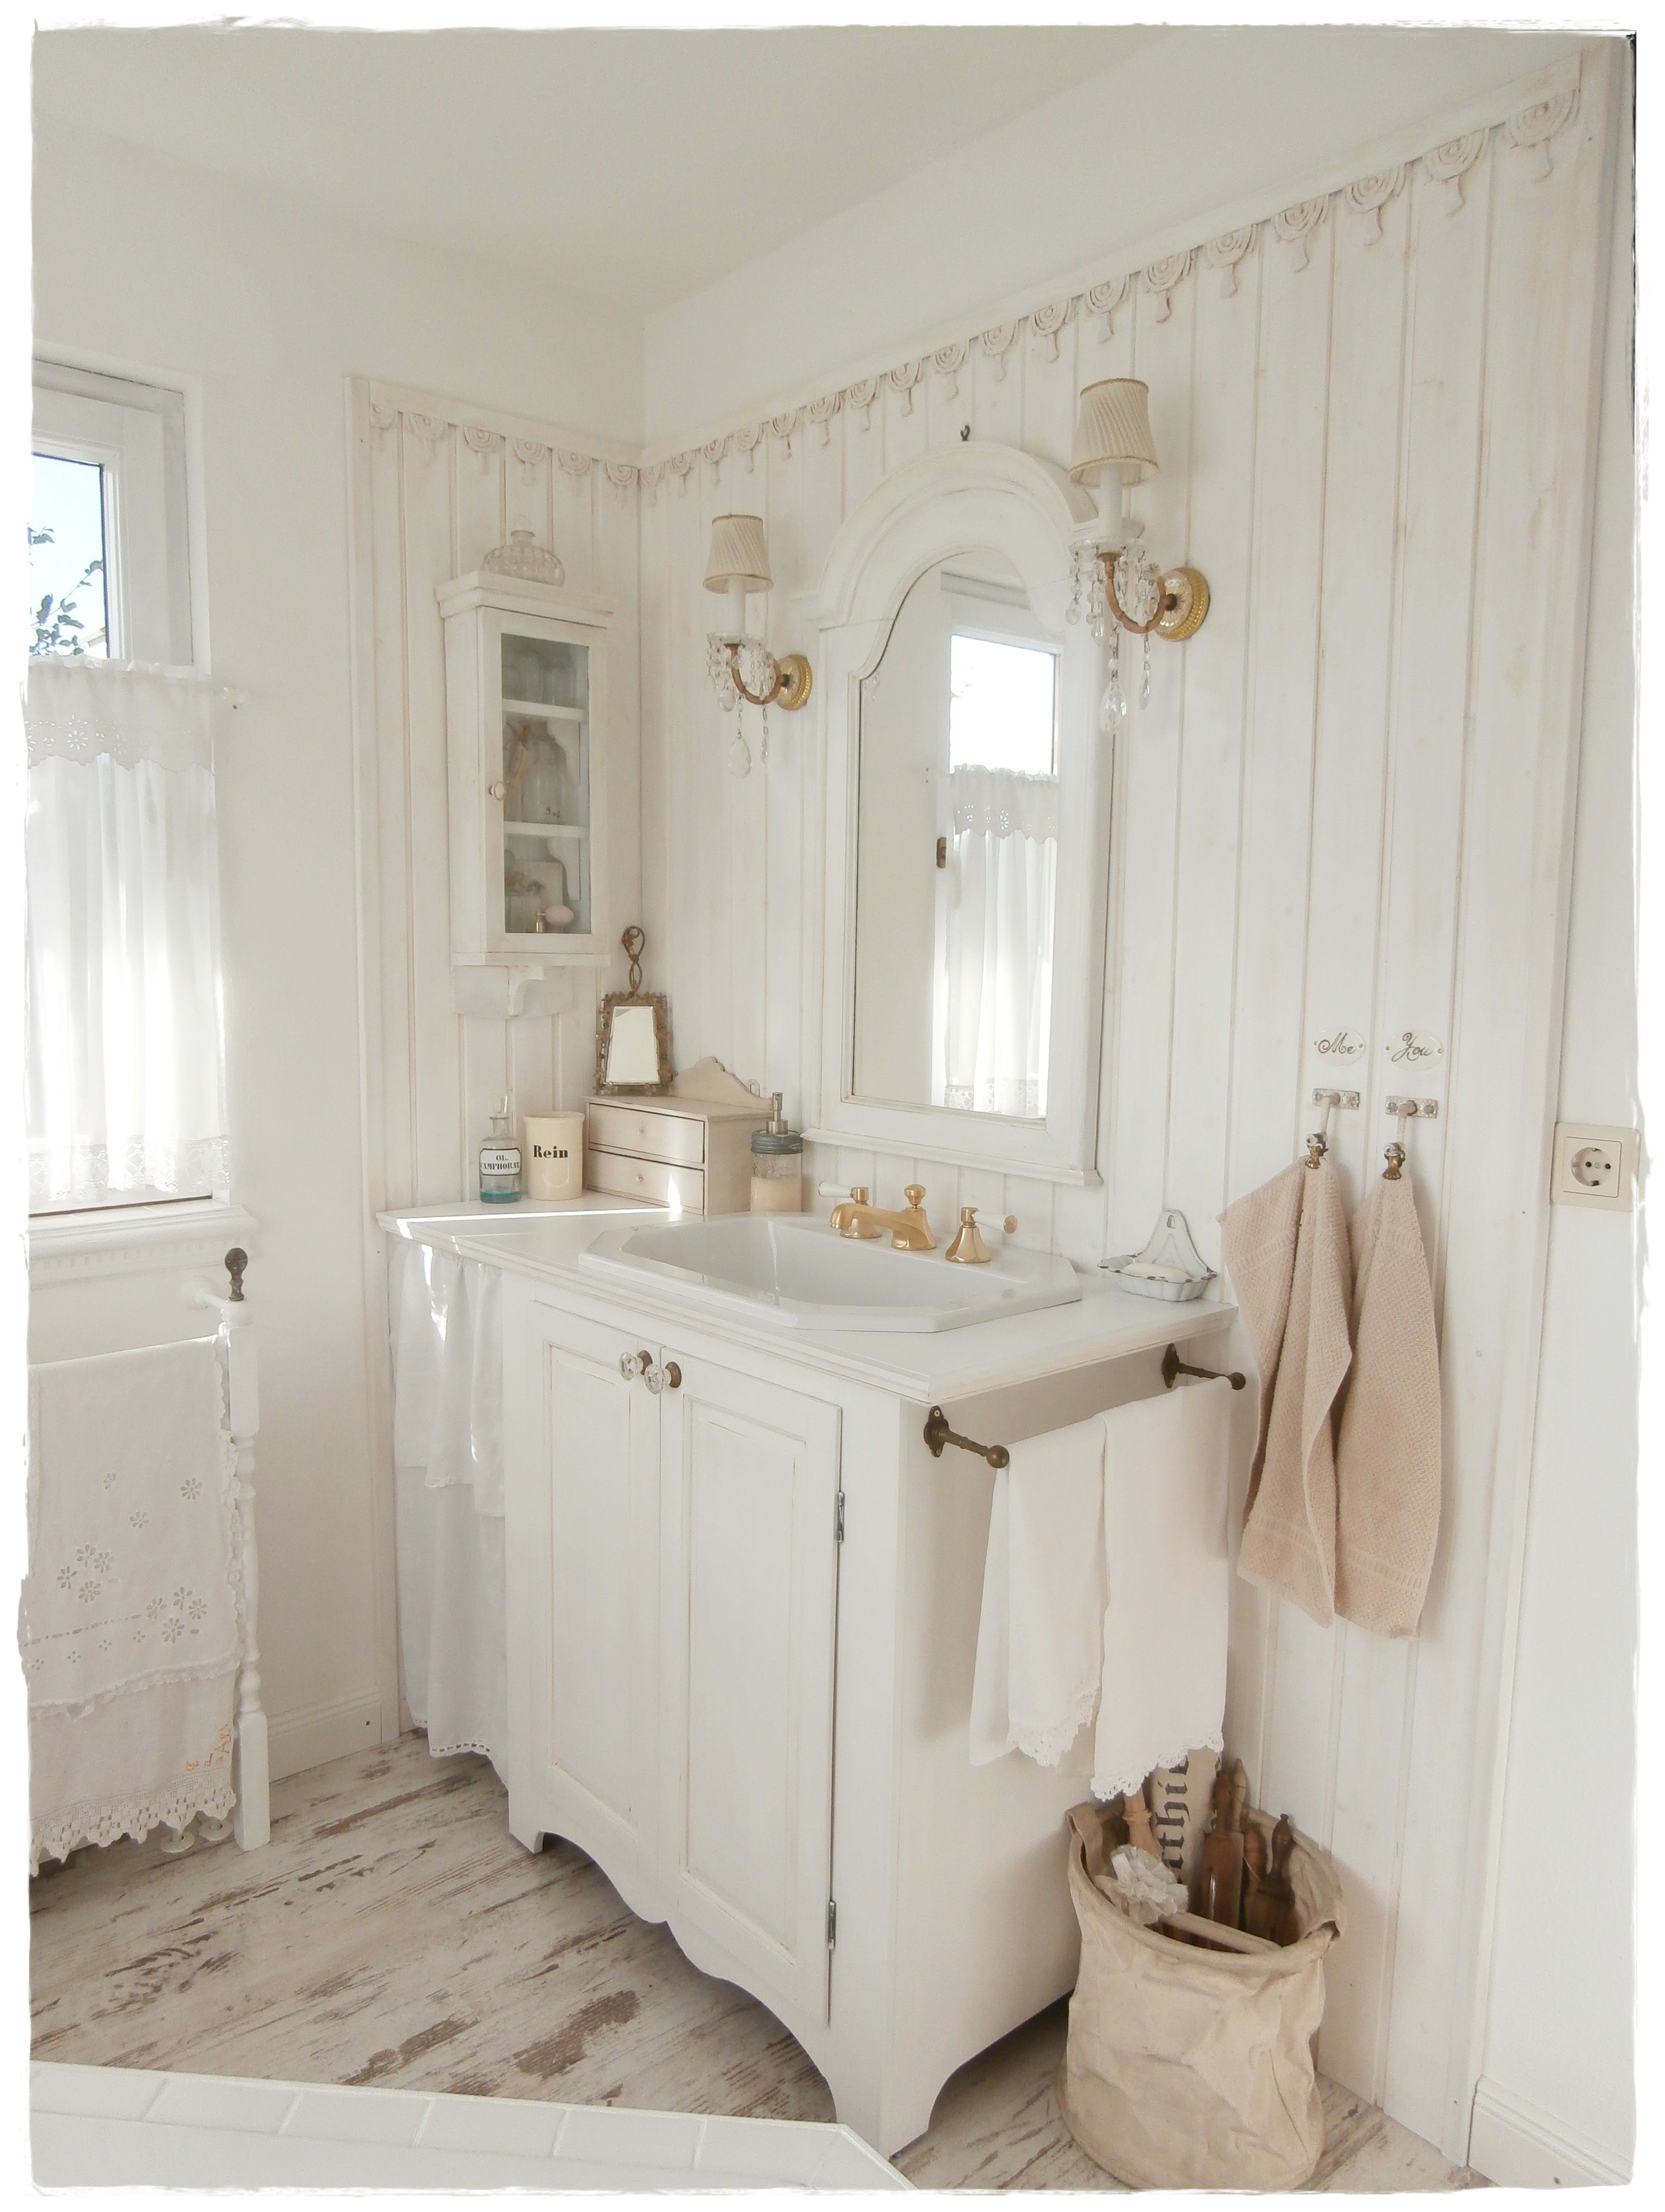 bathroom shabby chic and white bathroom pinterest badezimmer b der und wohnen. Black Bedroom Furniture Sets. Home Design Ideas